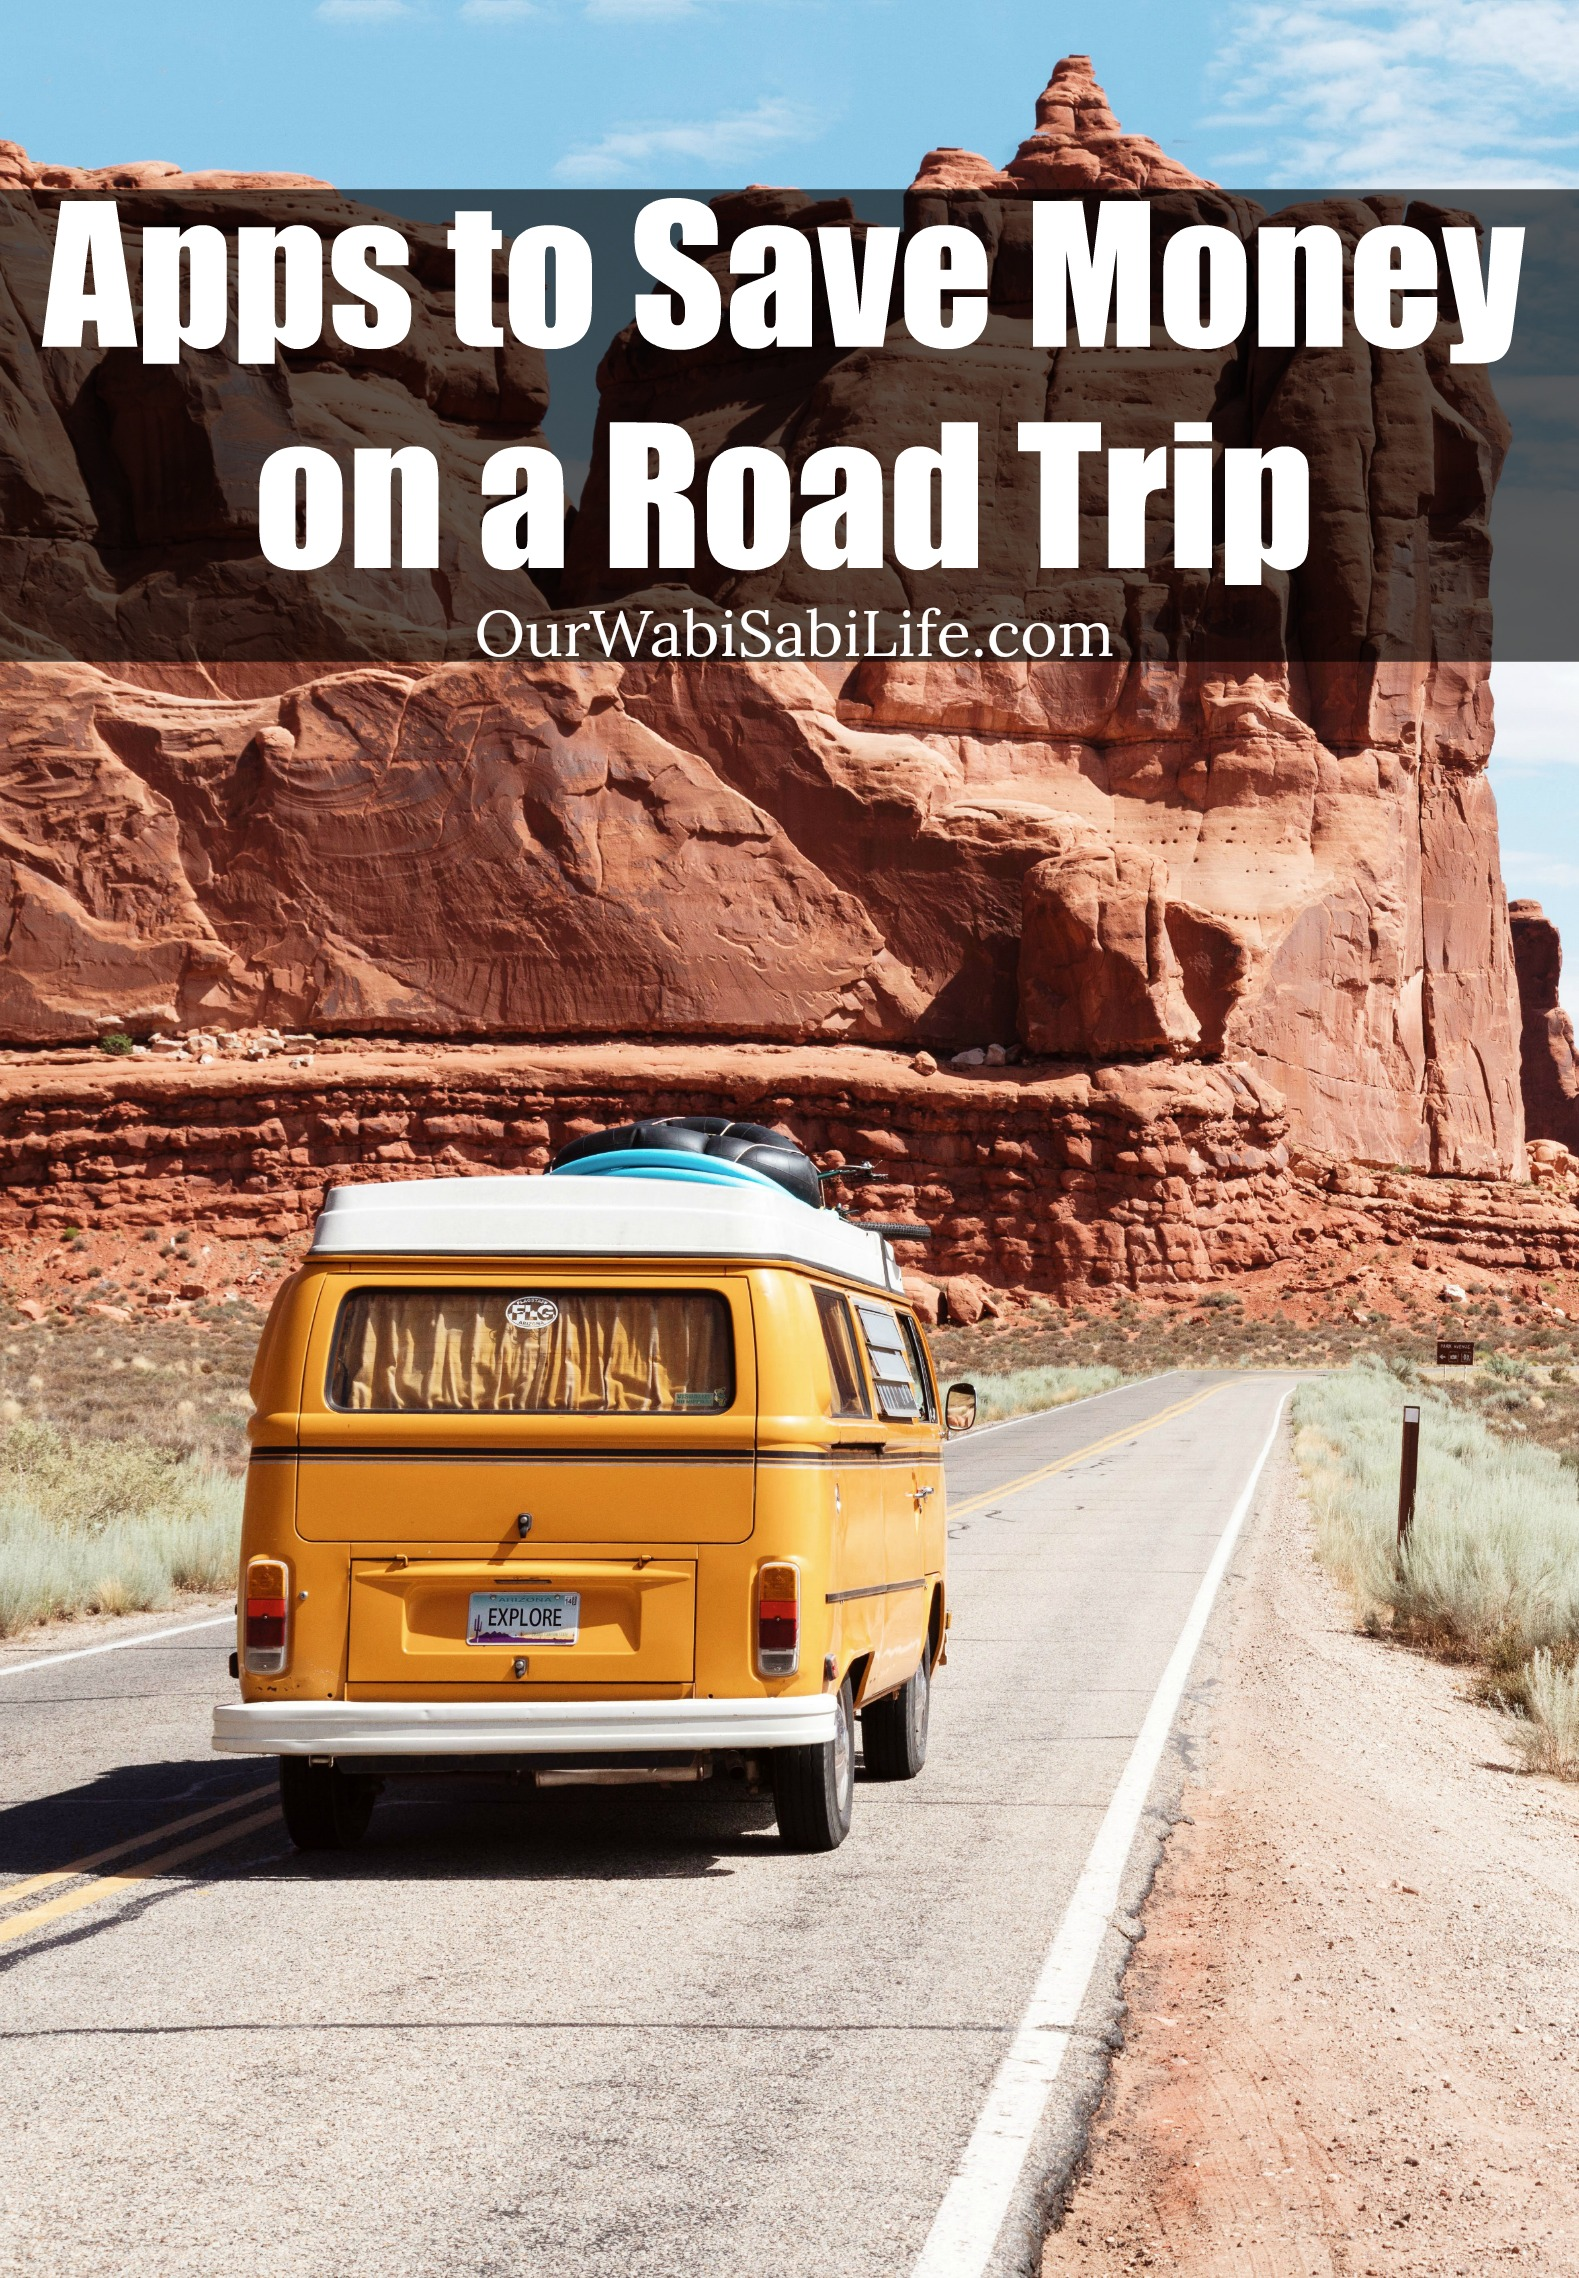 Gas Road Trip Apps To Save Money On A Road Trip Our Wabisabi Life